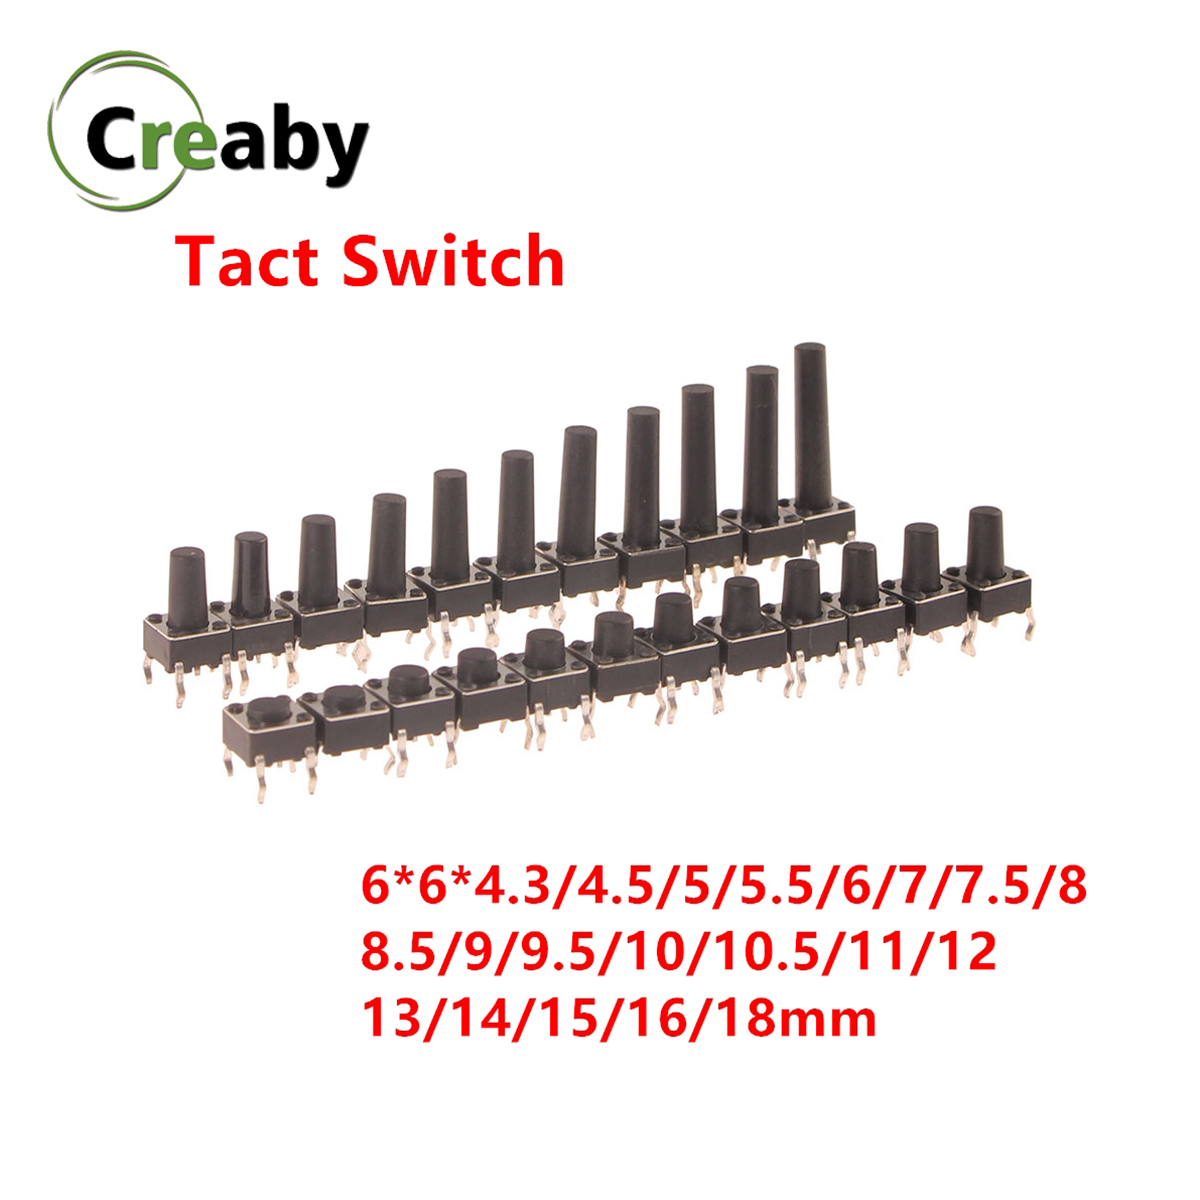 Micro Switch 6x6mm Panel PCB Momentary Tactile Tact Mini Push Button Switch DIP 4pin 6x6x4.3/4.5/5/6/18 MM 6*6*4.3mm 4.5mm